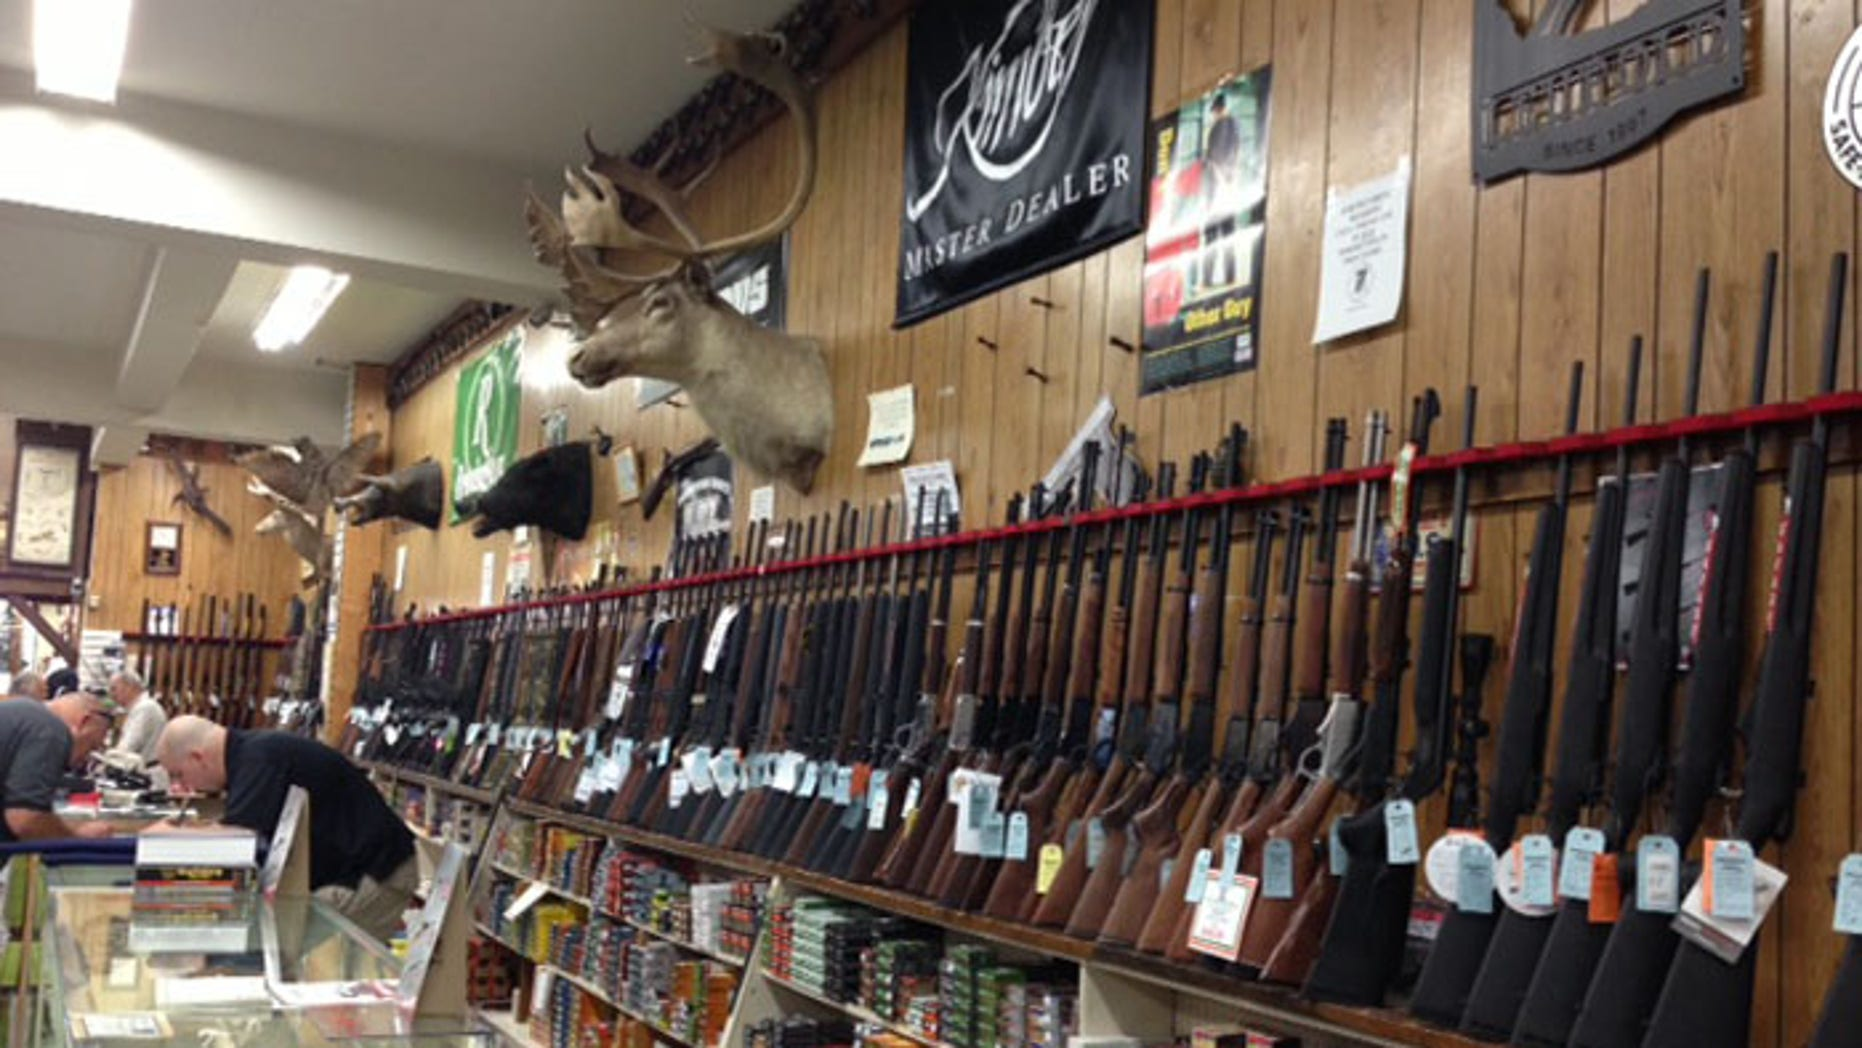 Dunkelberger's Sporting Outfitter on Main Street in Stroudsburg, where Eric Frein made purchases -- the most recent in 2012, said owner Jere Dunkelberger.